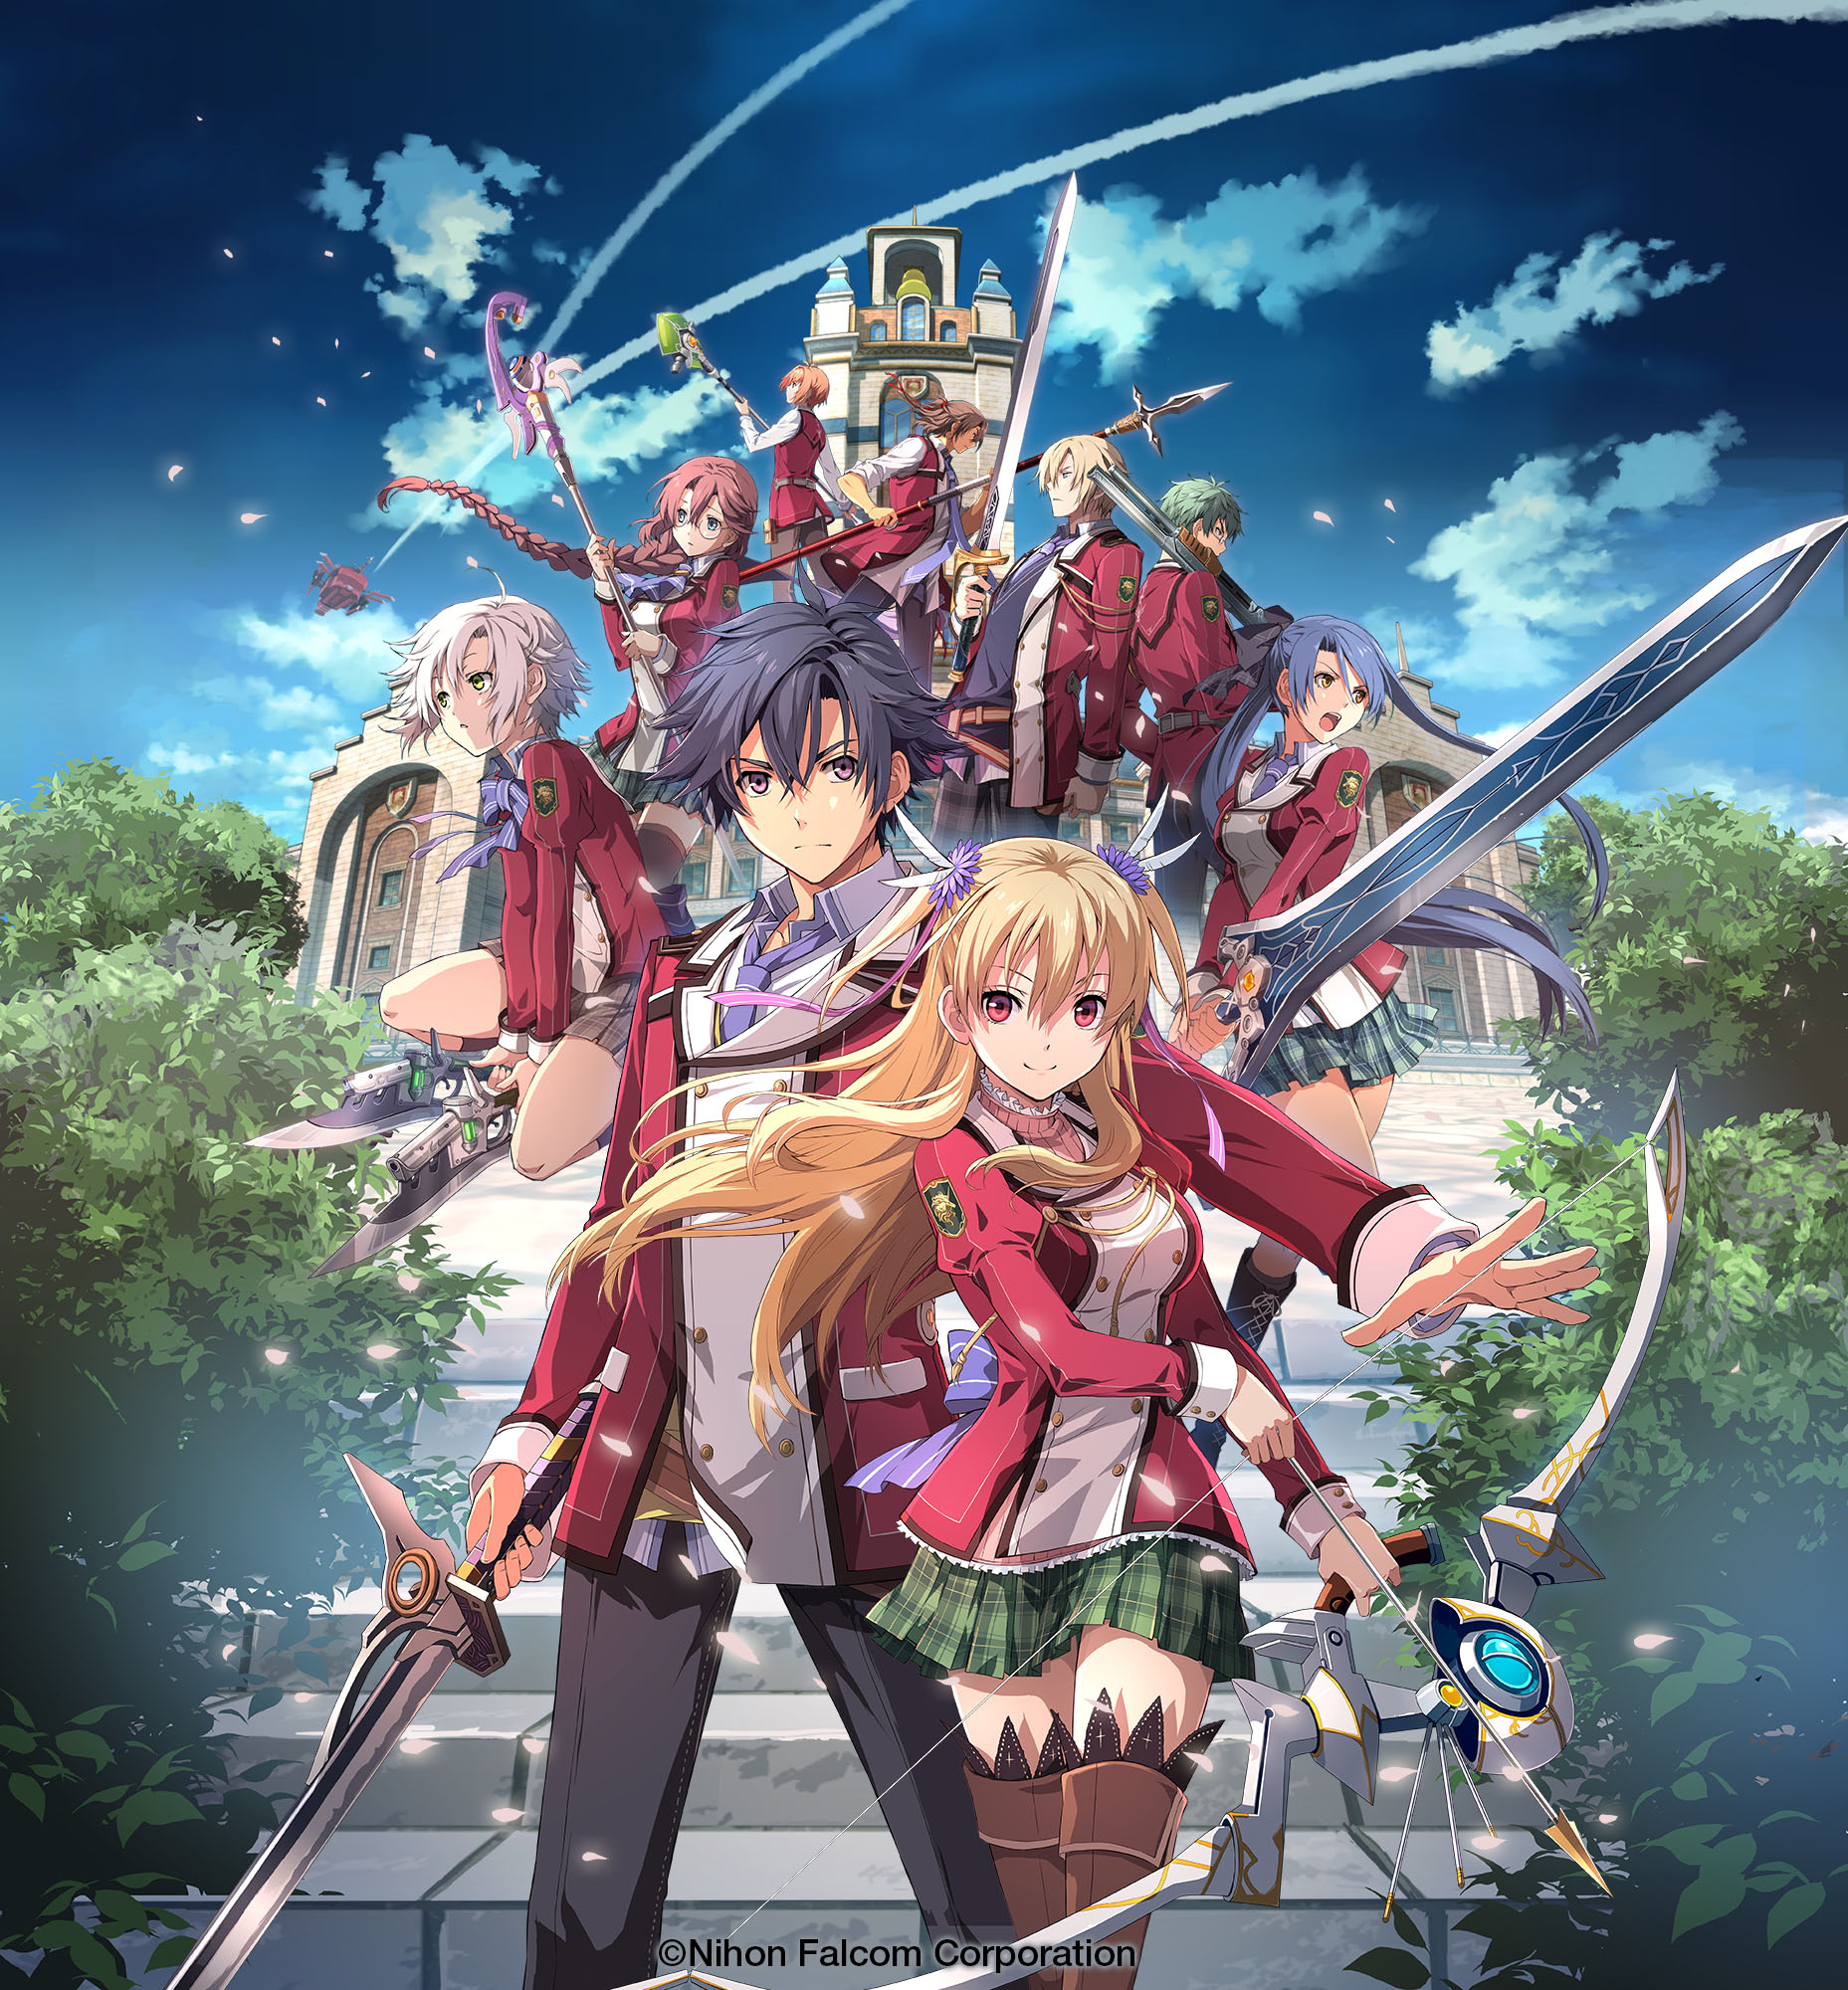 Premium 3D Musical The Legend of Heroes: Trails of Cold Steel IS HERE!